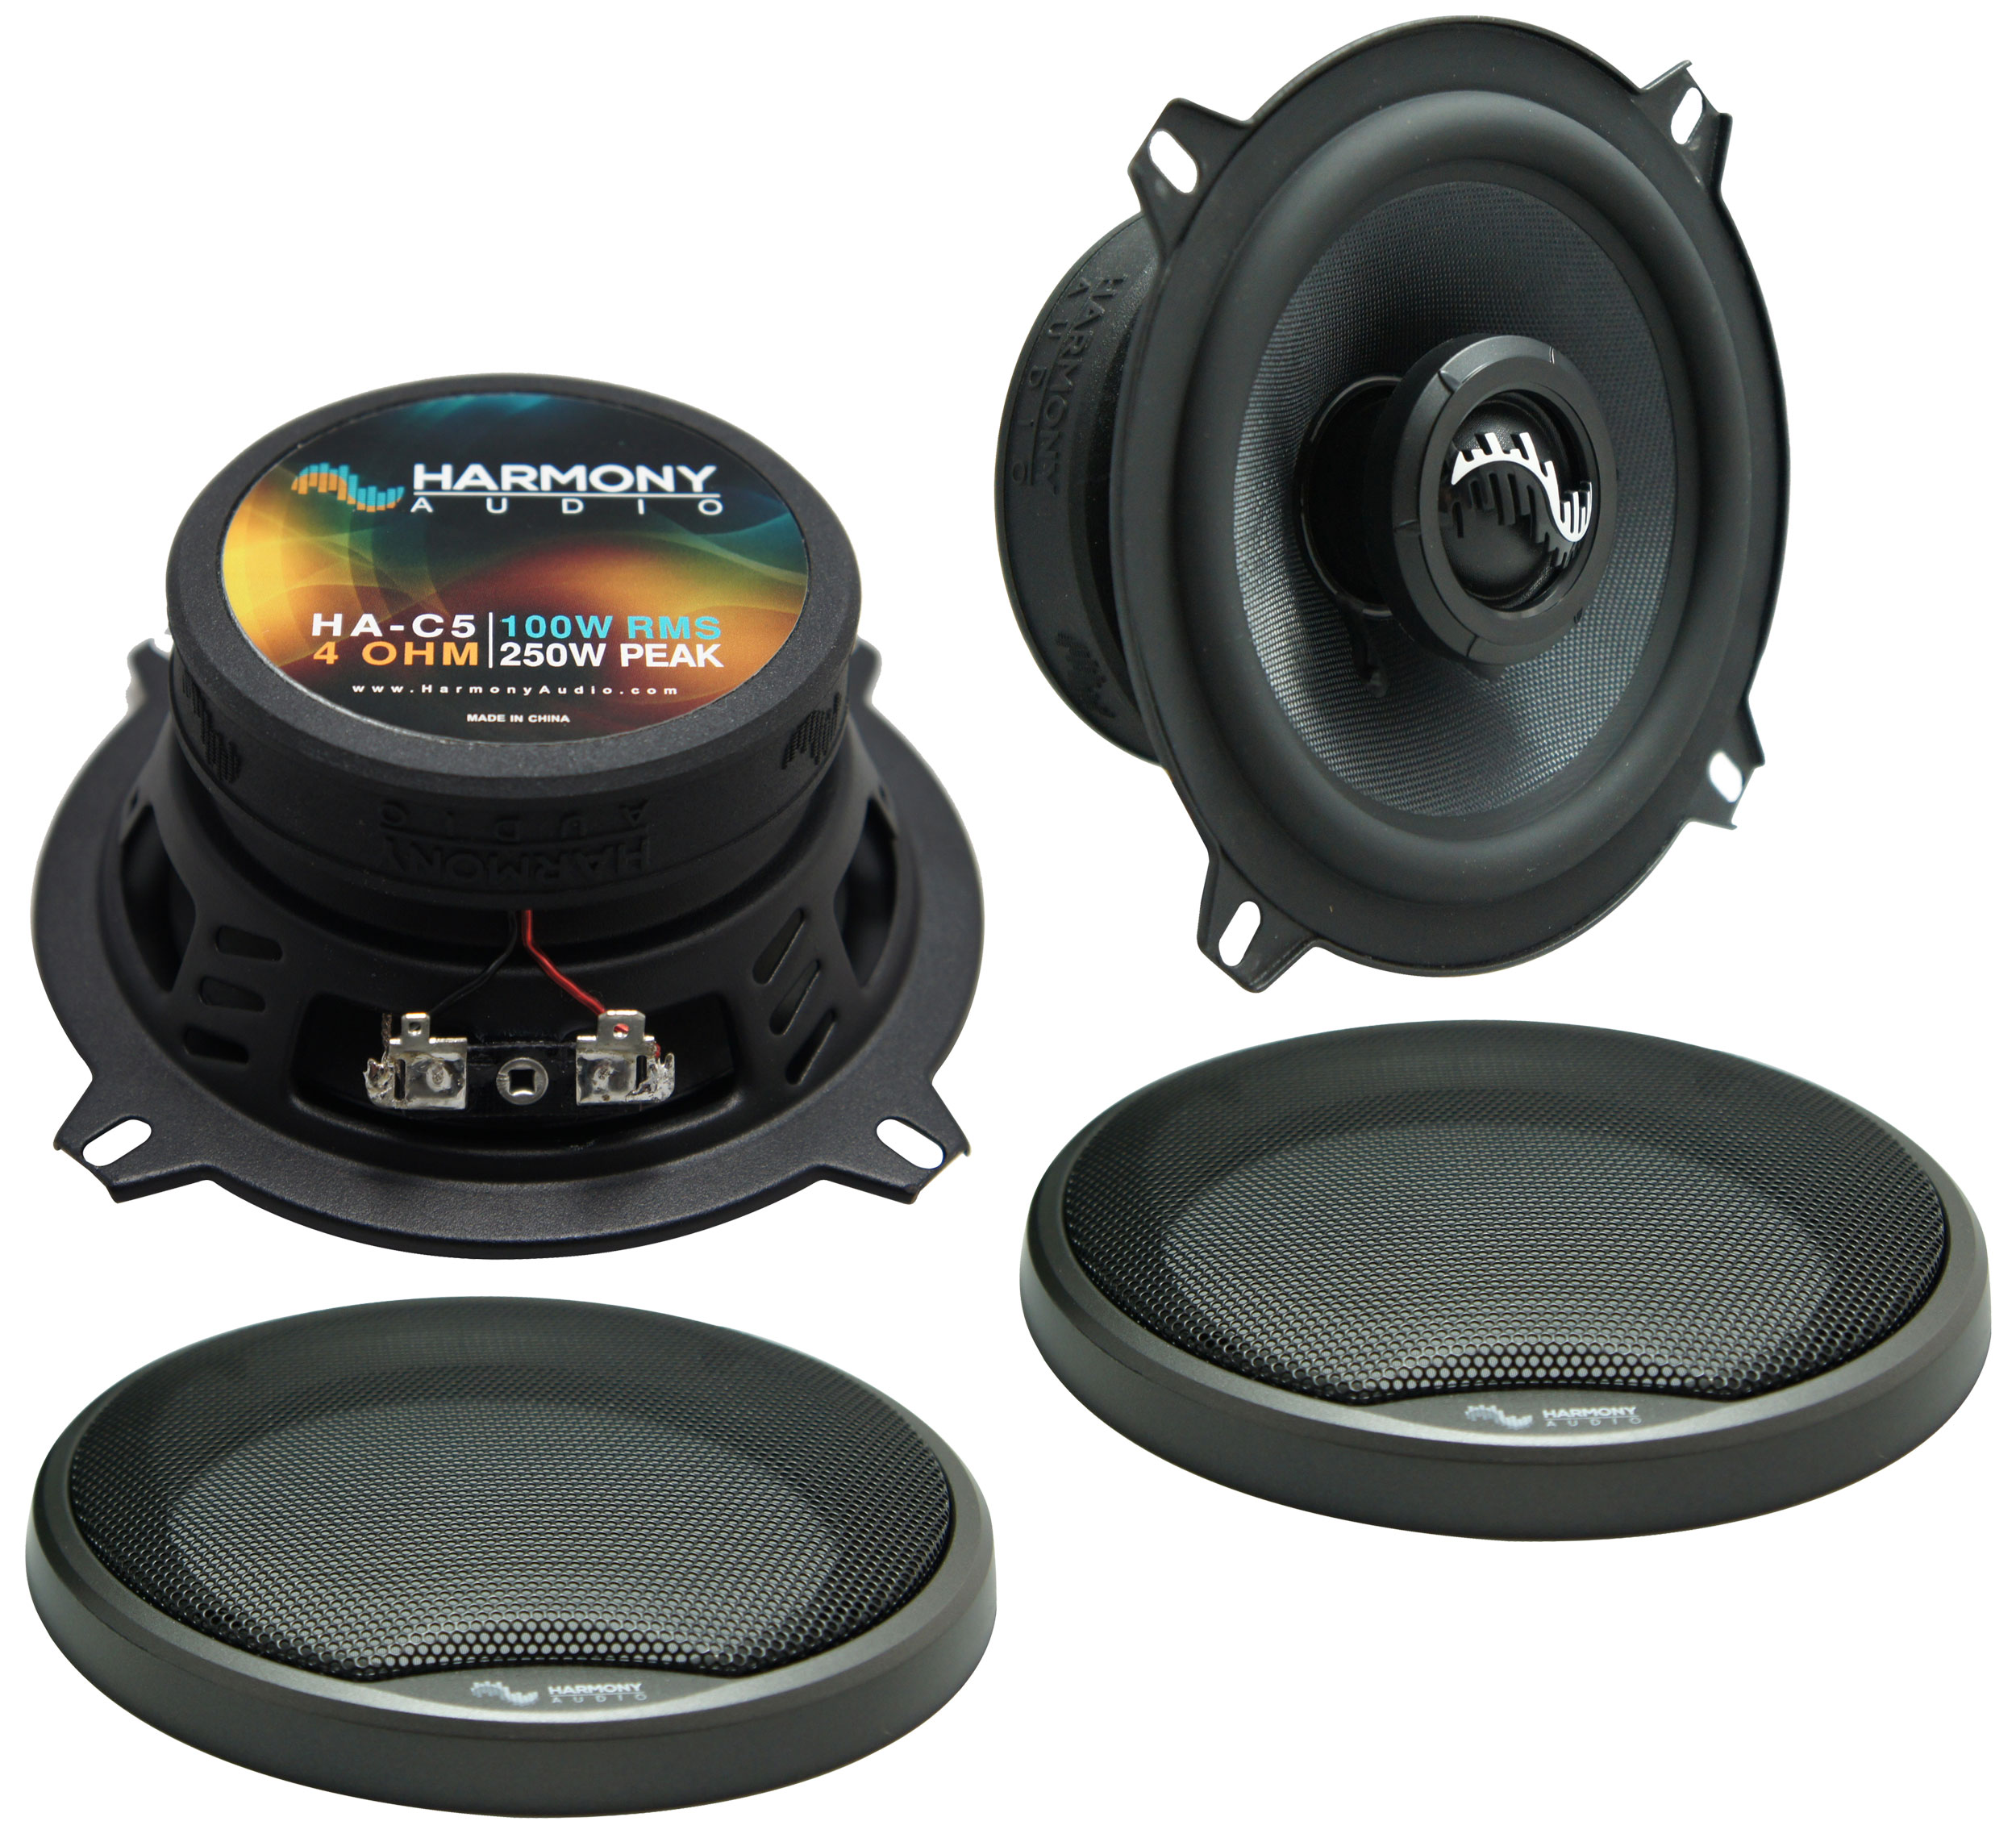 Fits BMW 3 Series 2002-2005 Front Door Replacement  Harmony HA-C5 Premium Speakers New